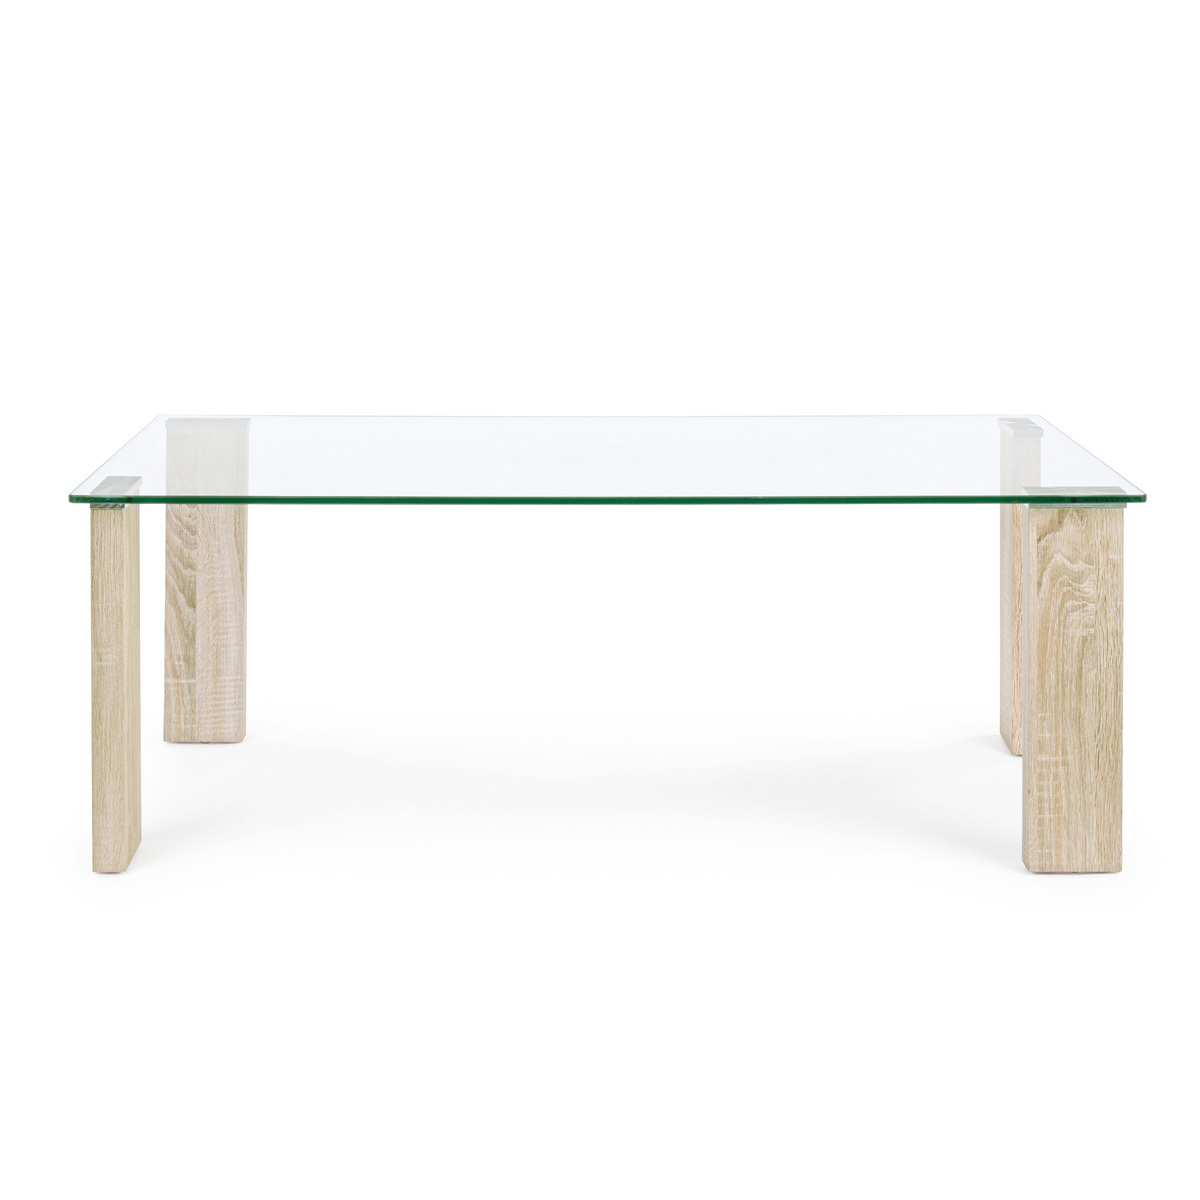 Photos 2: Bizzotto Table in glass and wood l. 120 x 60 0731677